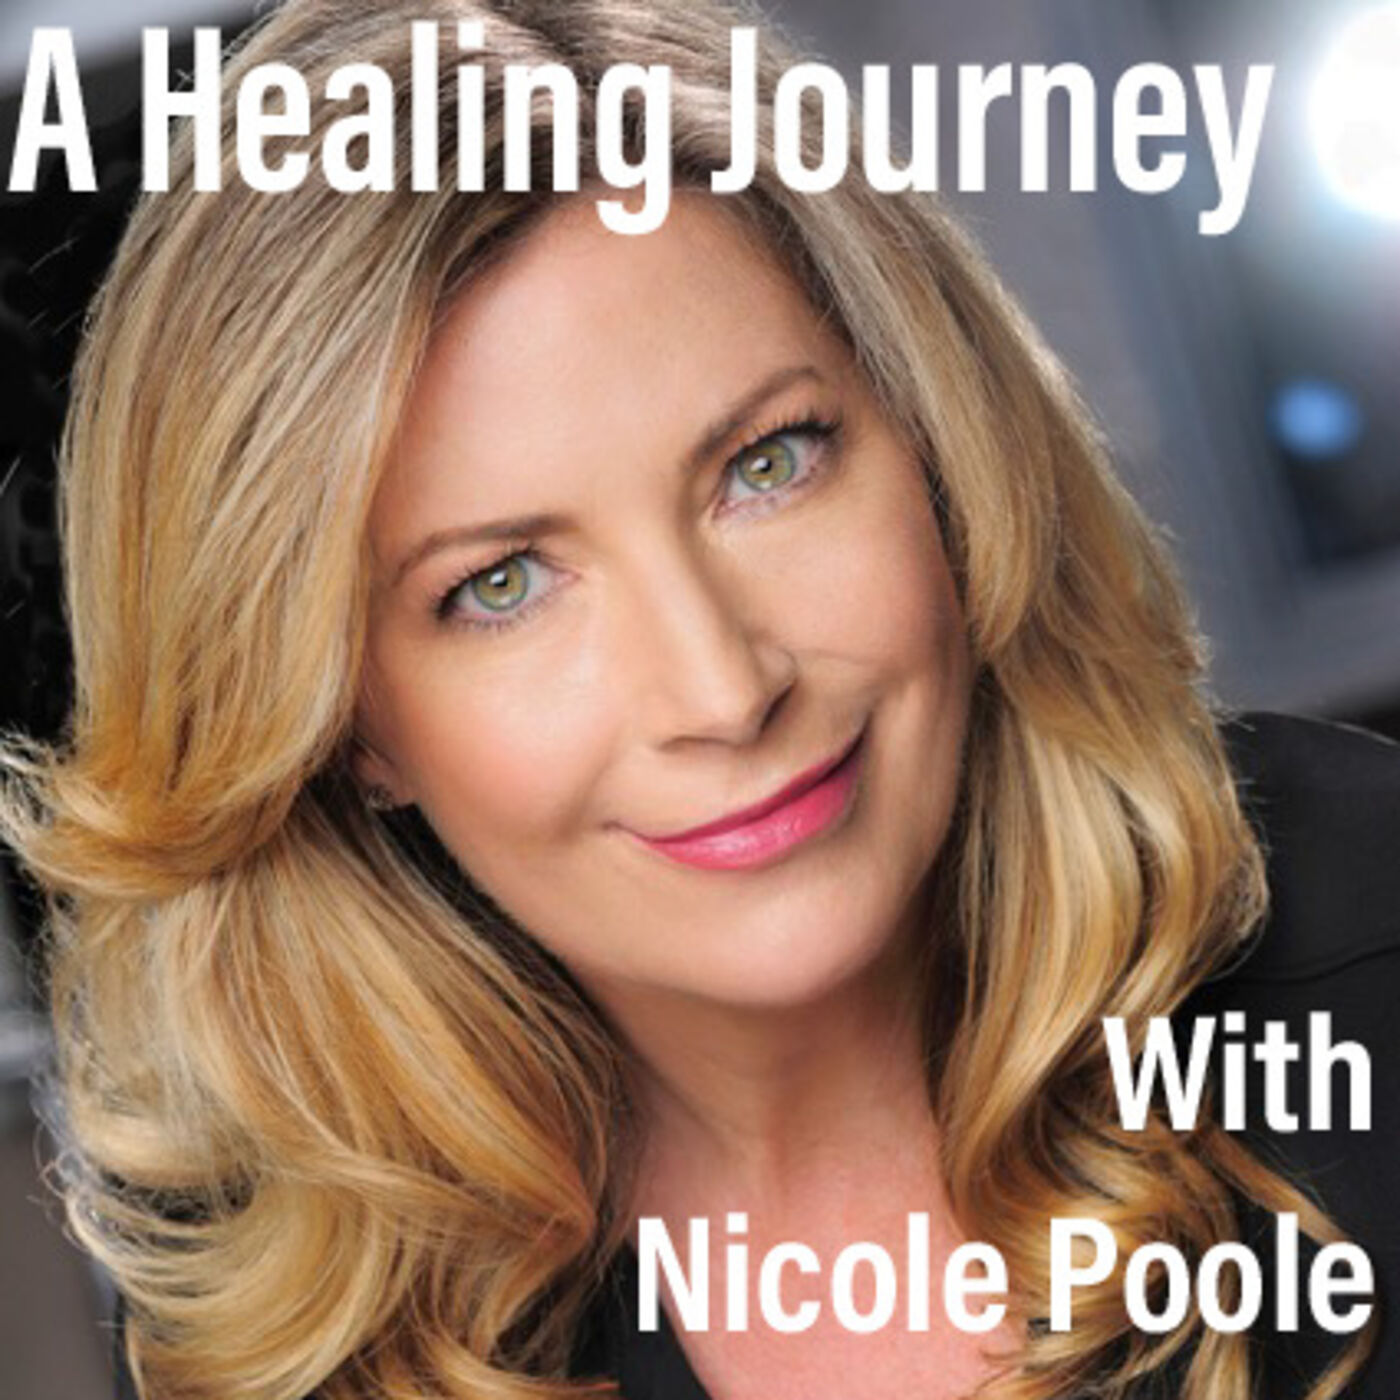 A Healing Journey with Nicole Poole